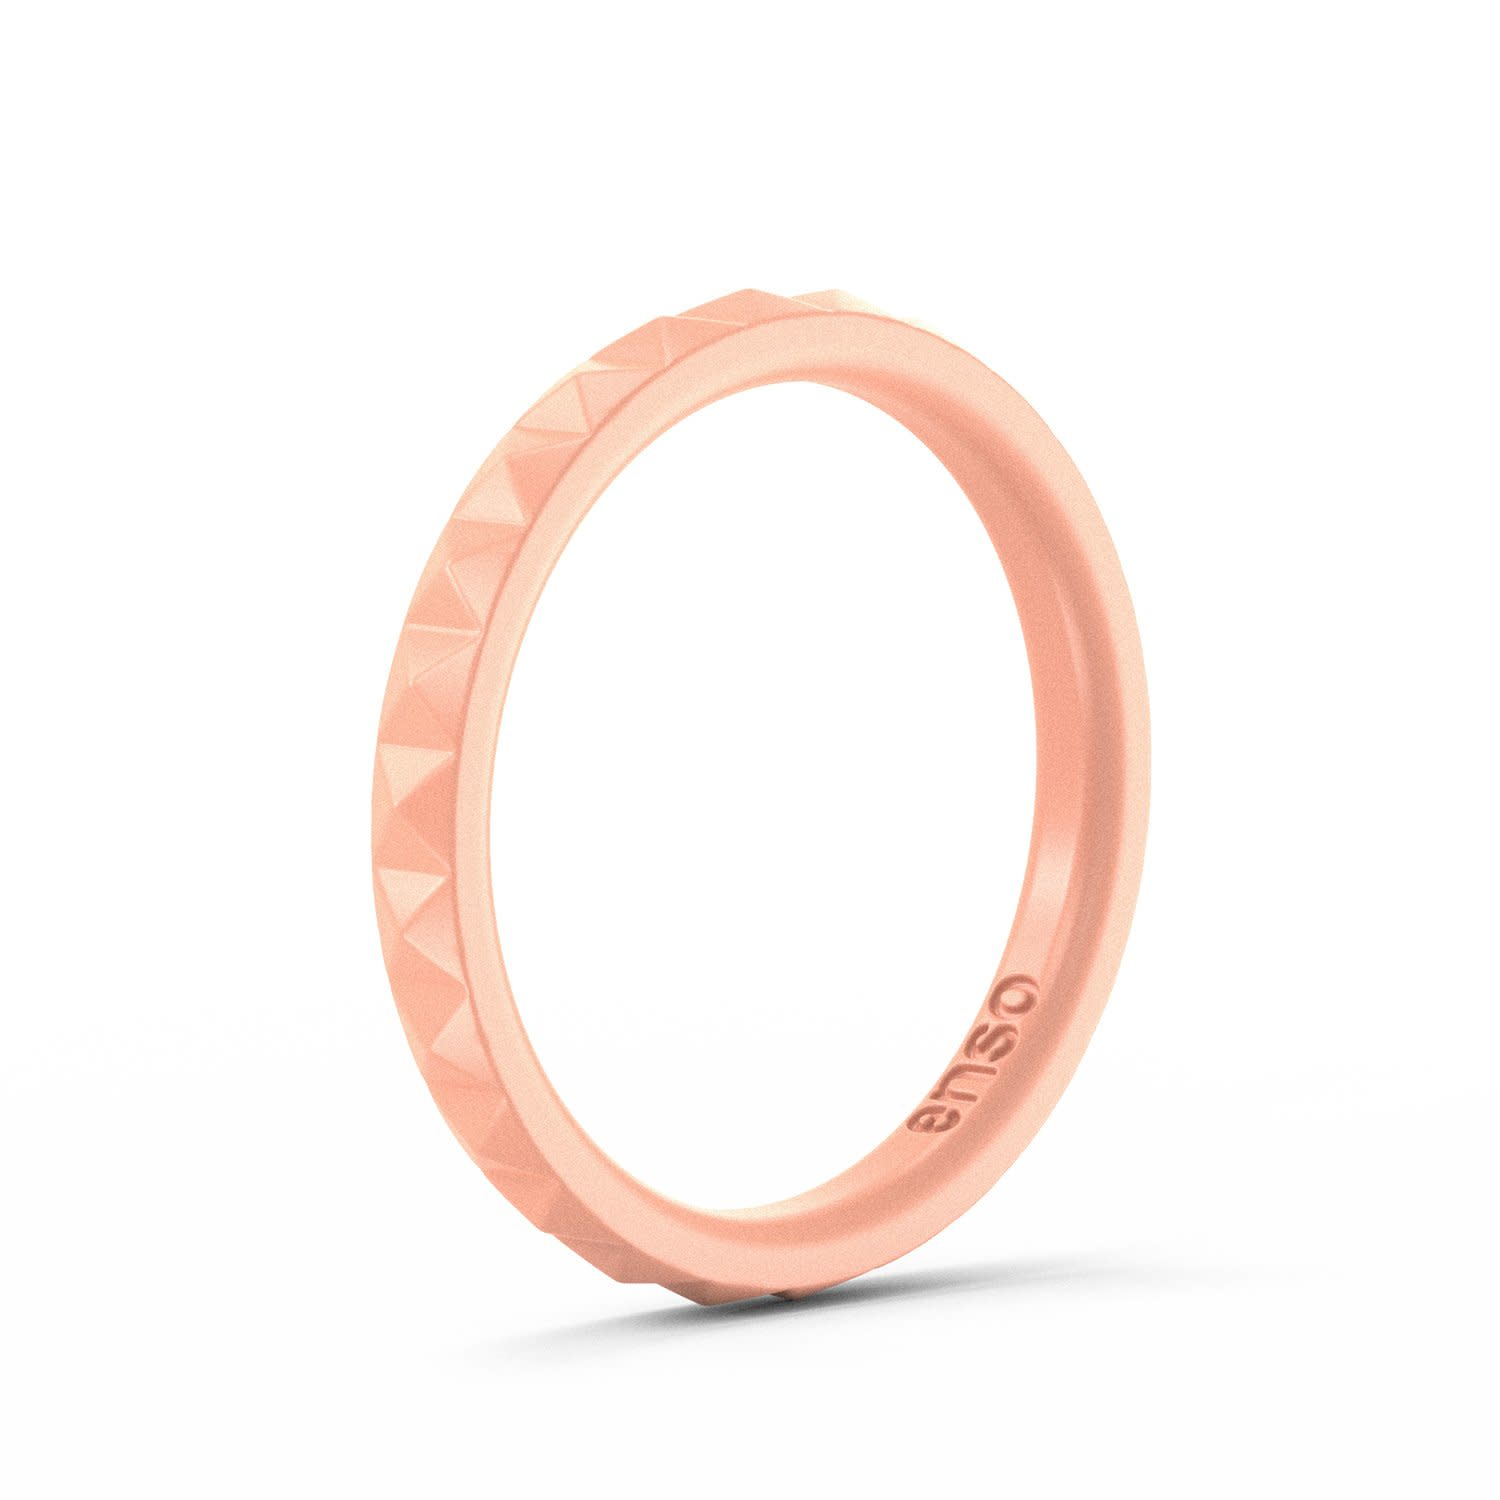 edge comfort rings all customized bands fit part rubber set for hypoallergenic band ii grade customizable medical thin no ring mens design product silicone logo lusso men wedding of beveled